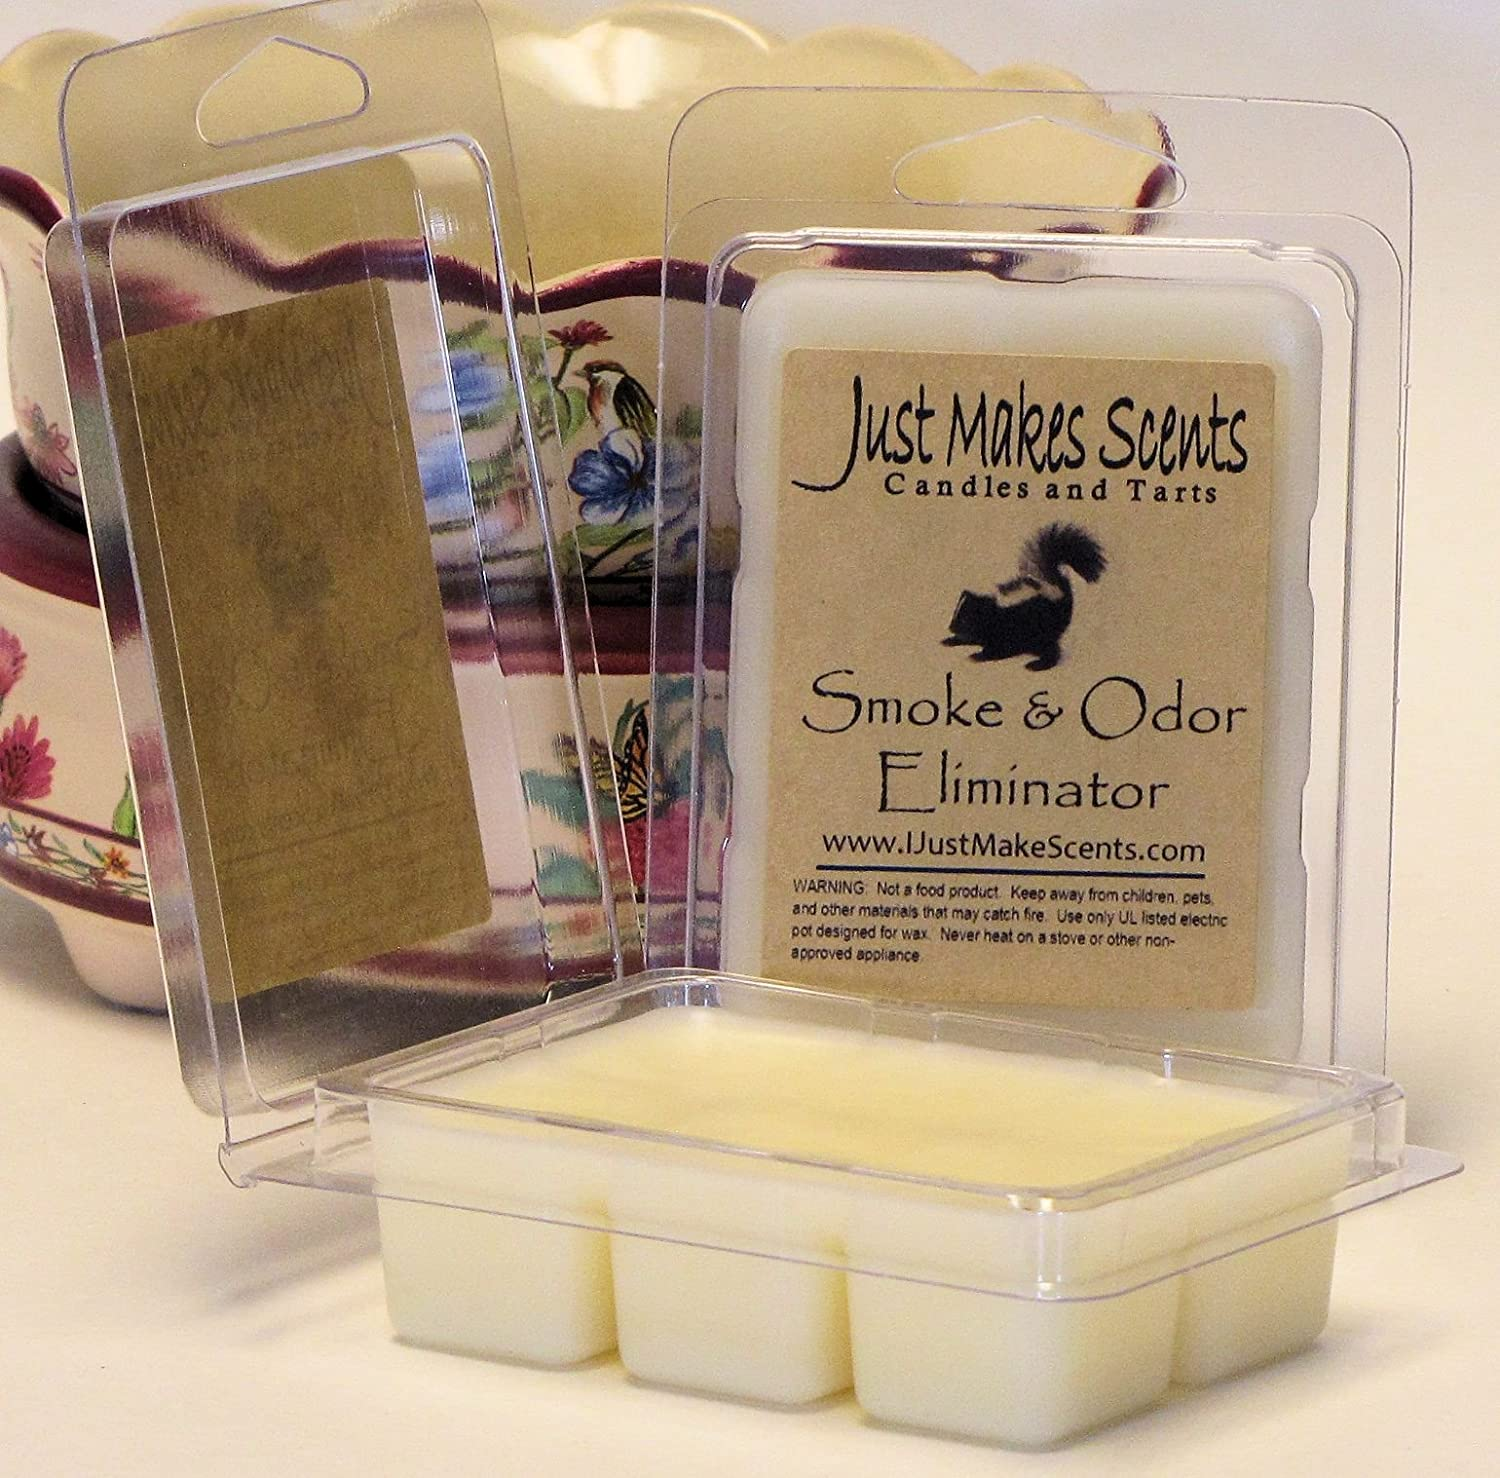 Just Makes Scents 2 Pack Smoke /& Odor Eliminator Scented Wax Melts